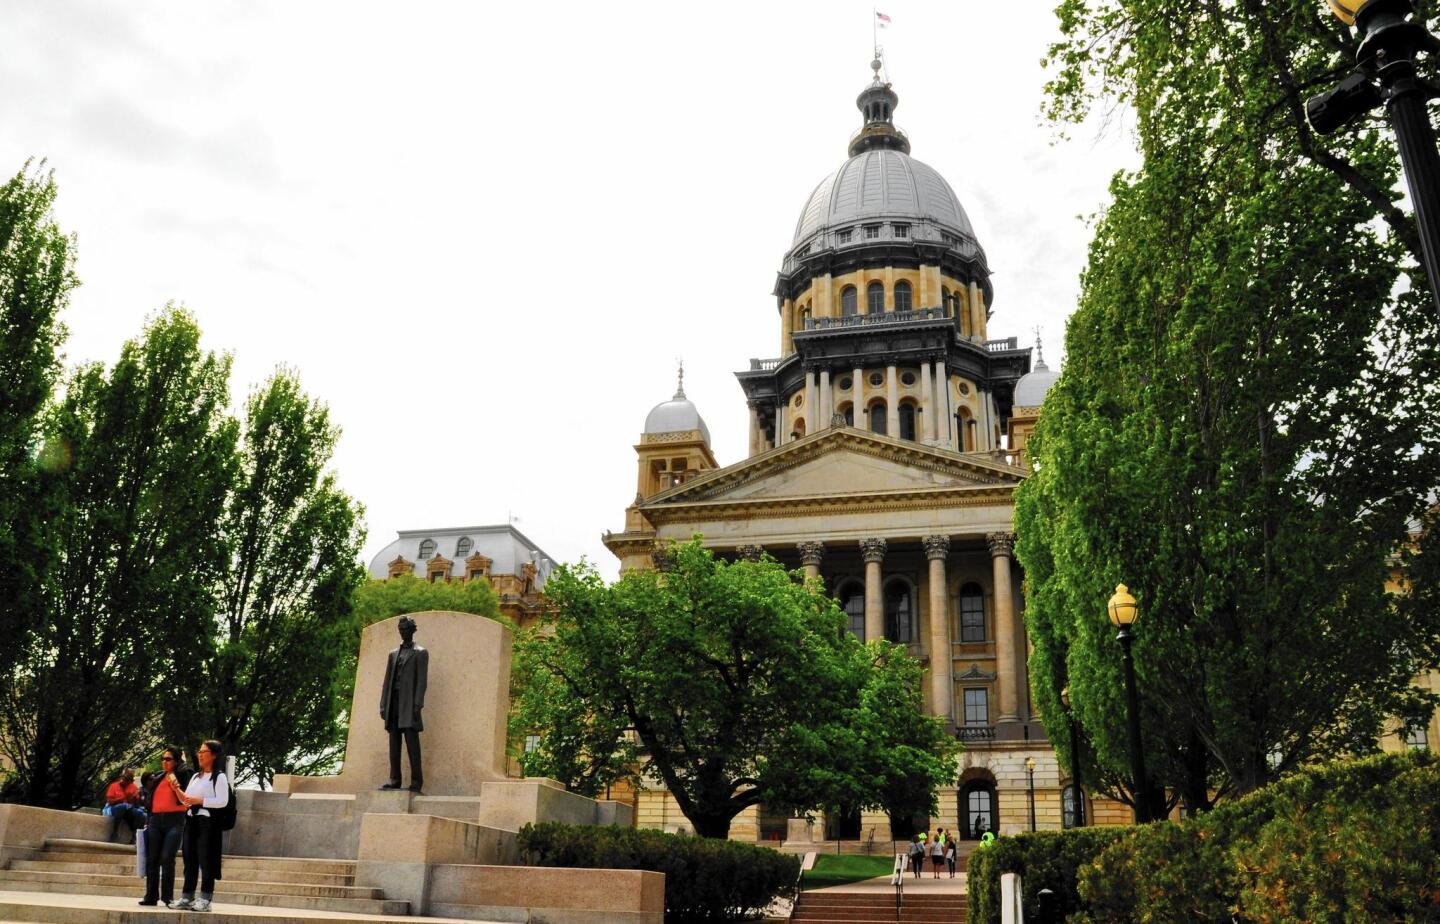 The Illinois State Capitol pays homage to Abraham Lincoln with statues inside and outside the building.